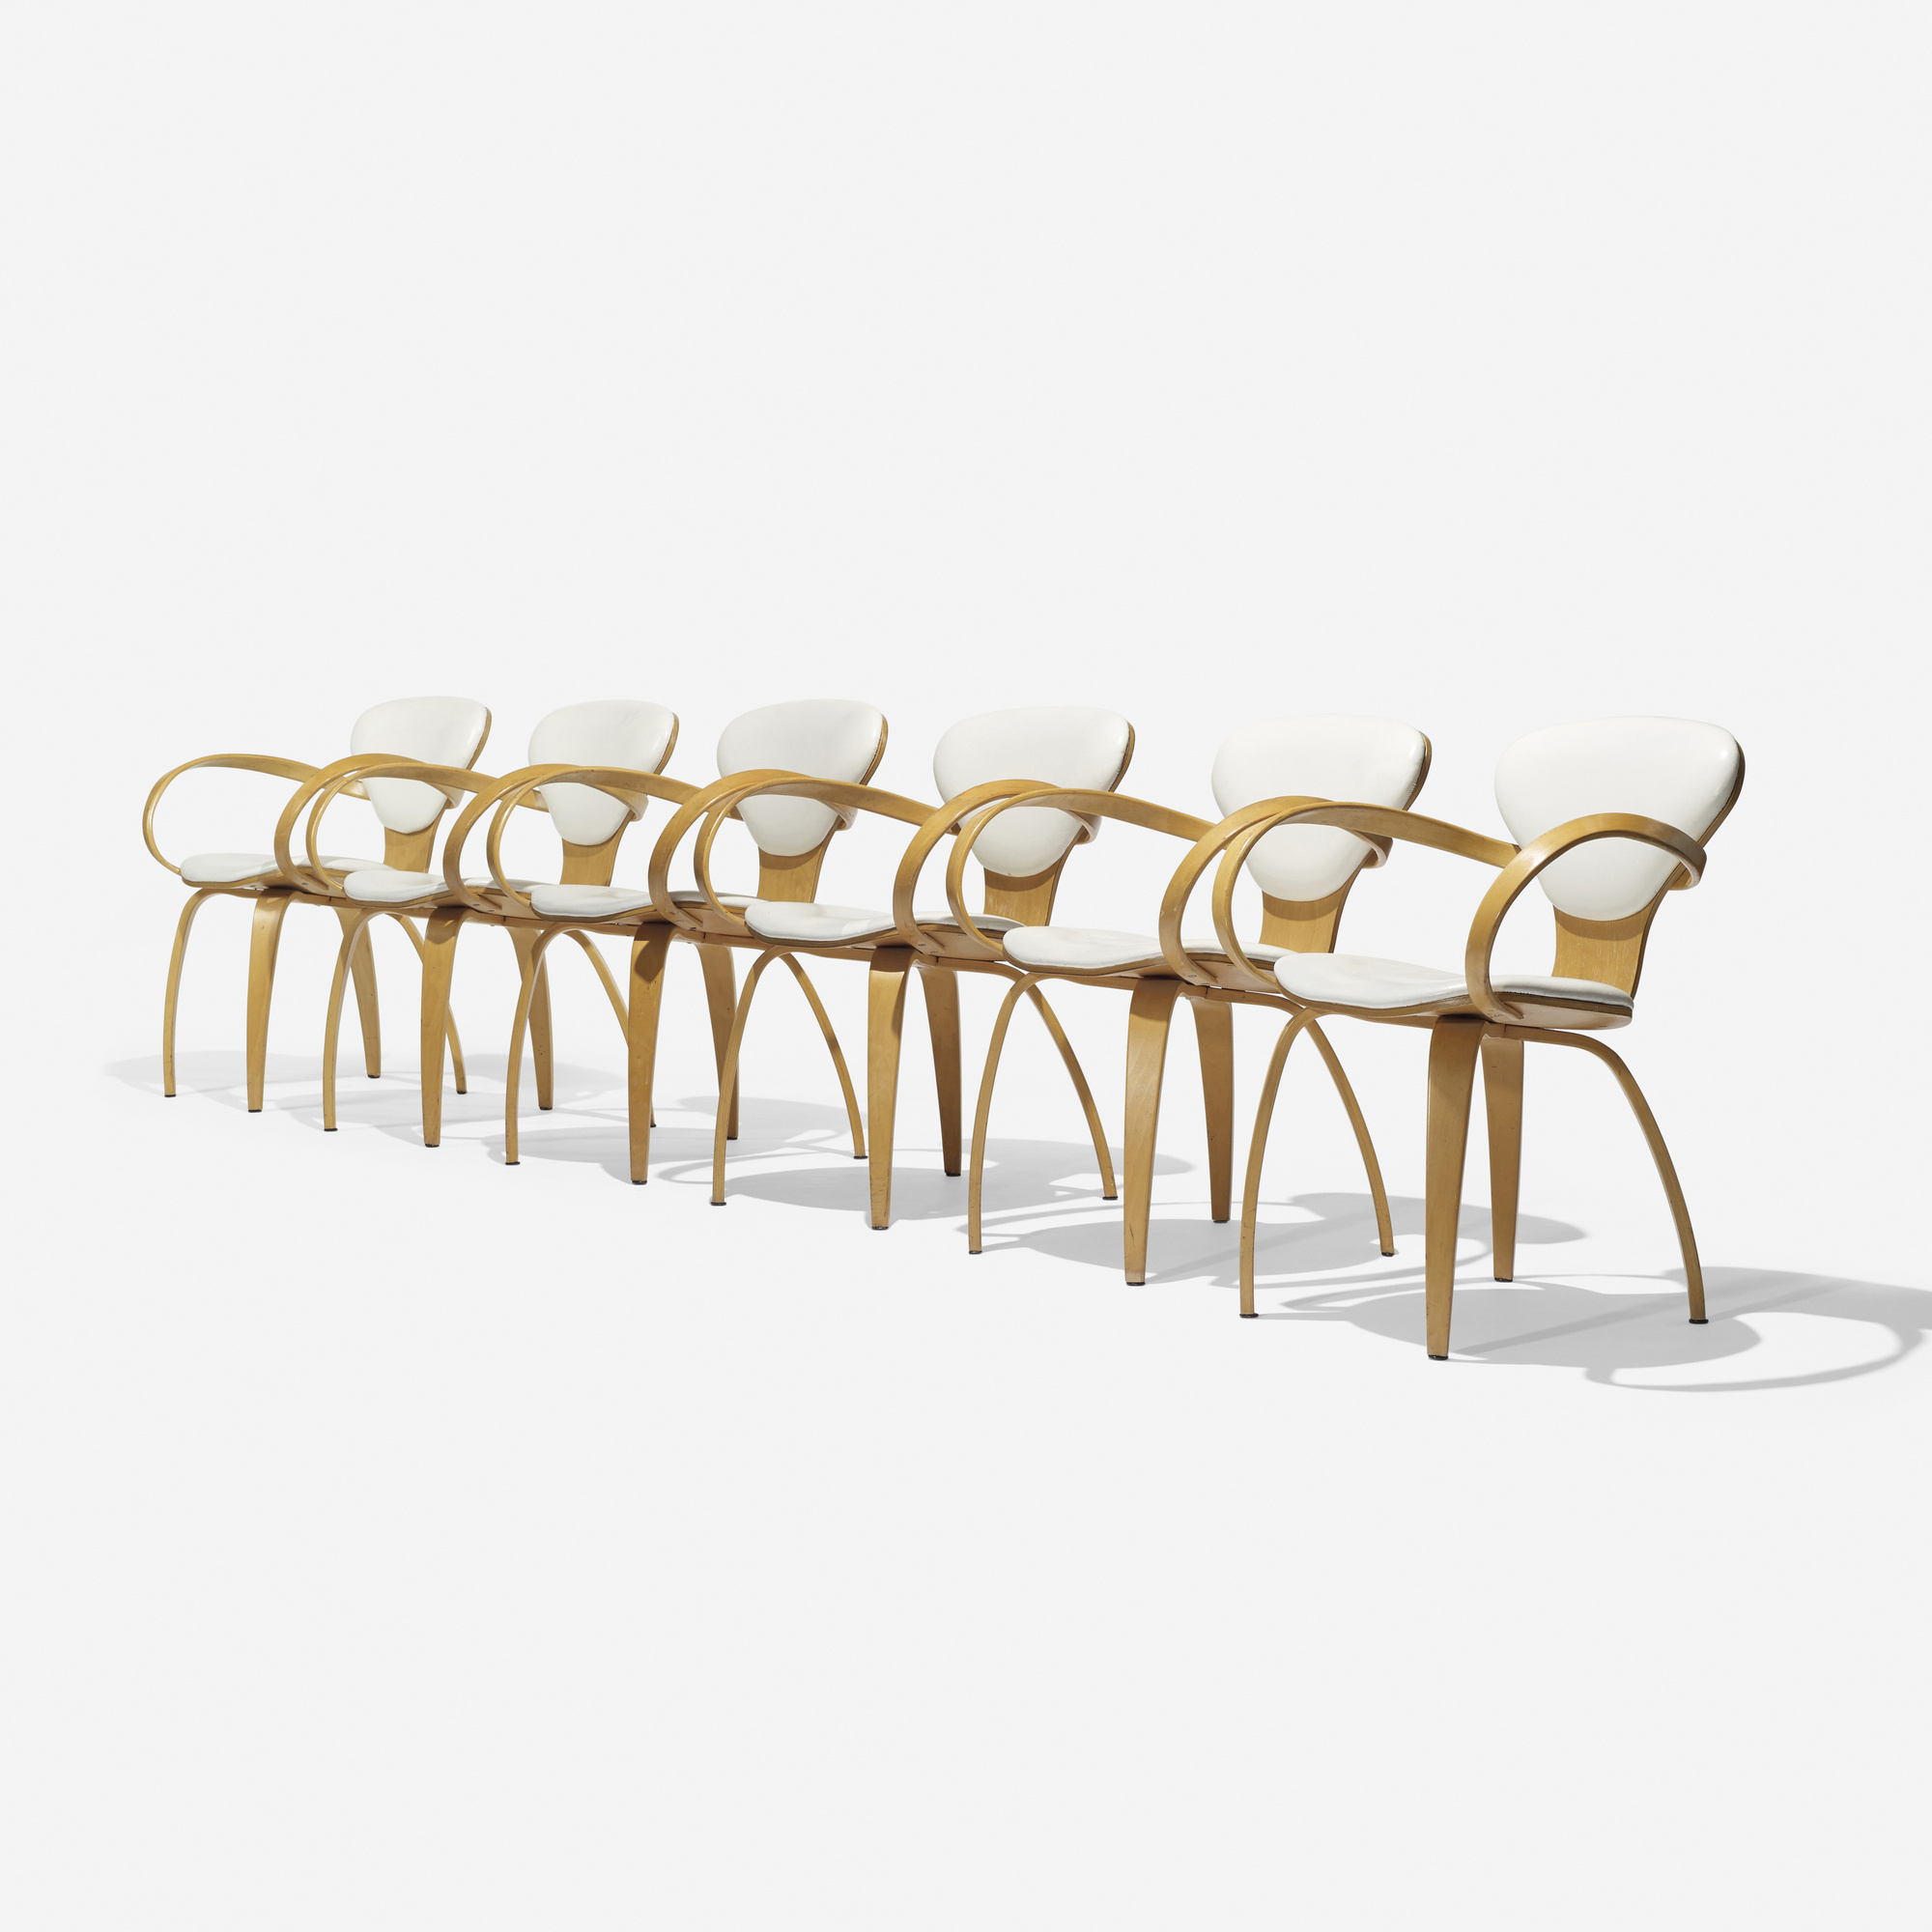 128: Lou App / Rockwell II armchairs, set of six (1 of 3)